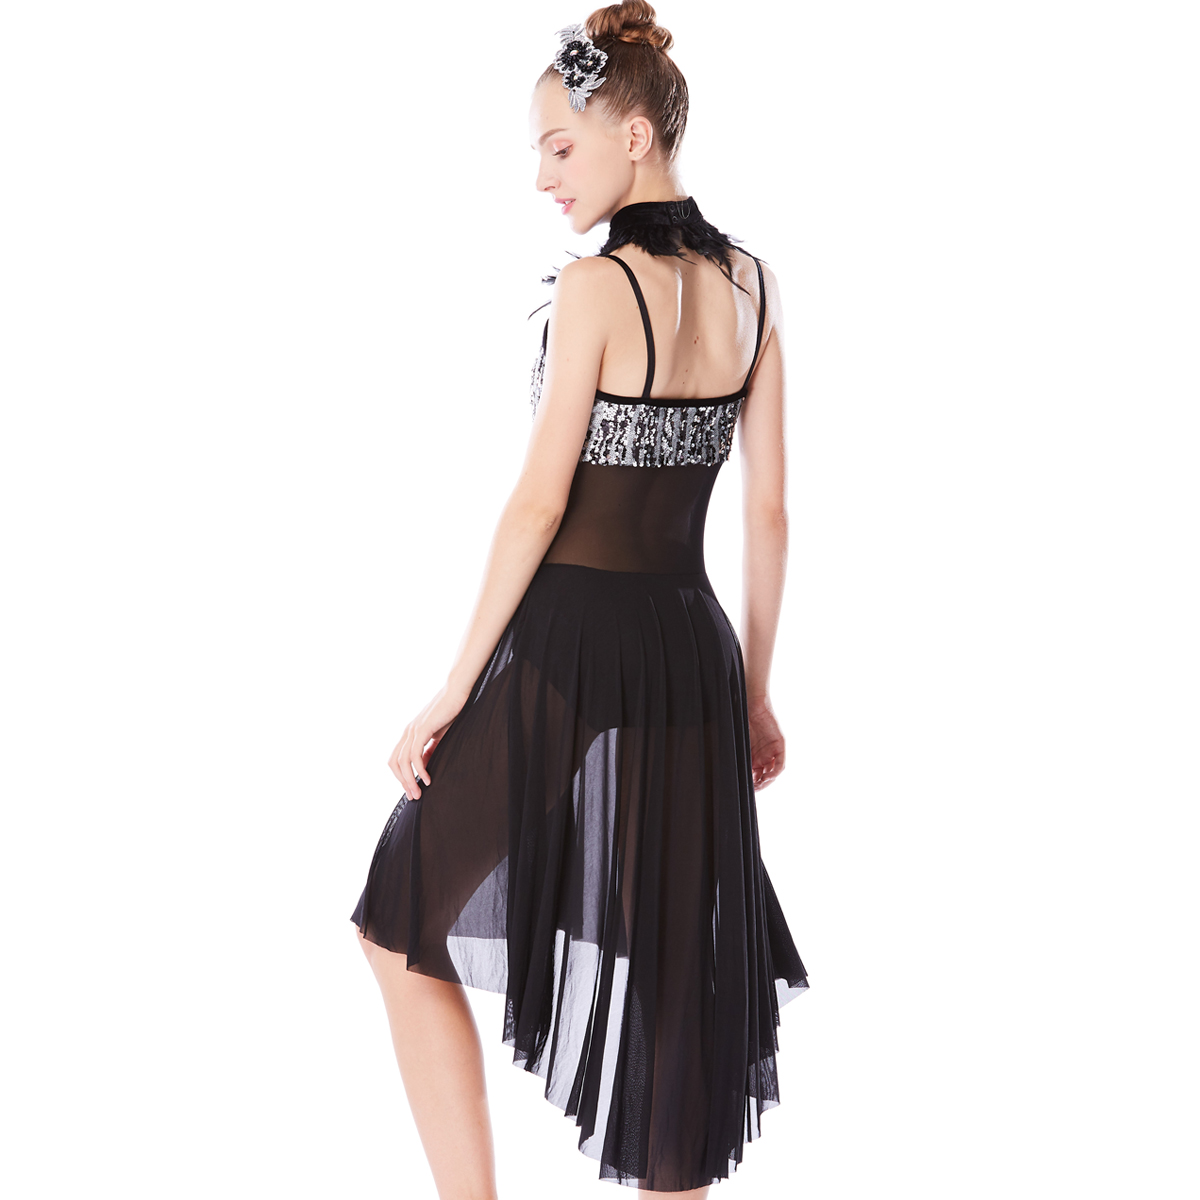 MIDEE modern lyrical contemporary costumes dance clothes stage-2